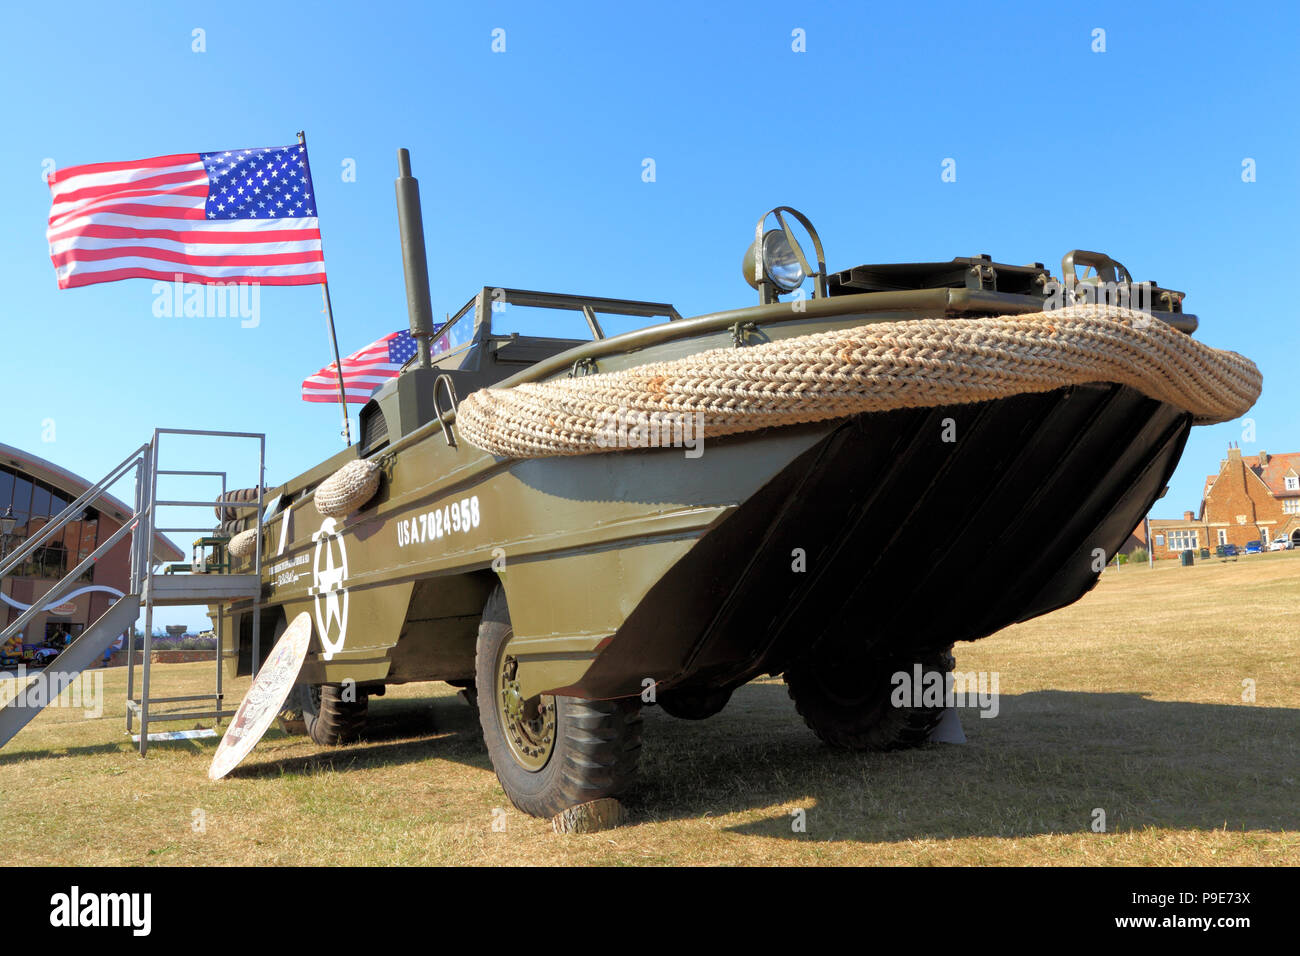 U.S. Second World War, DUKW, amphibious , military, vehicle, WW2, Stars and Stripes, American, Flag - Stock Image